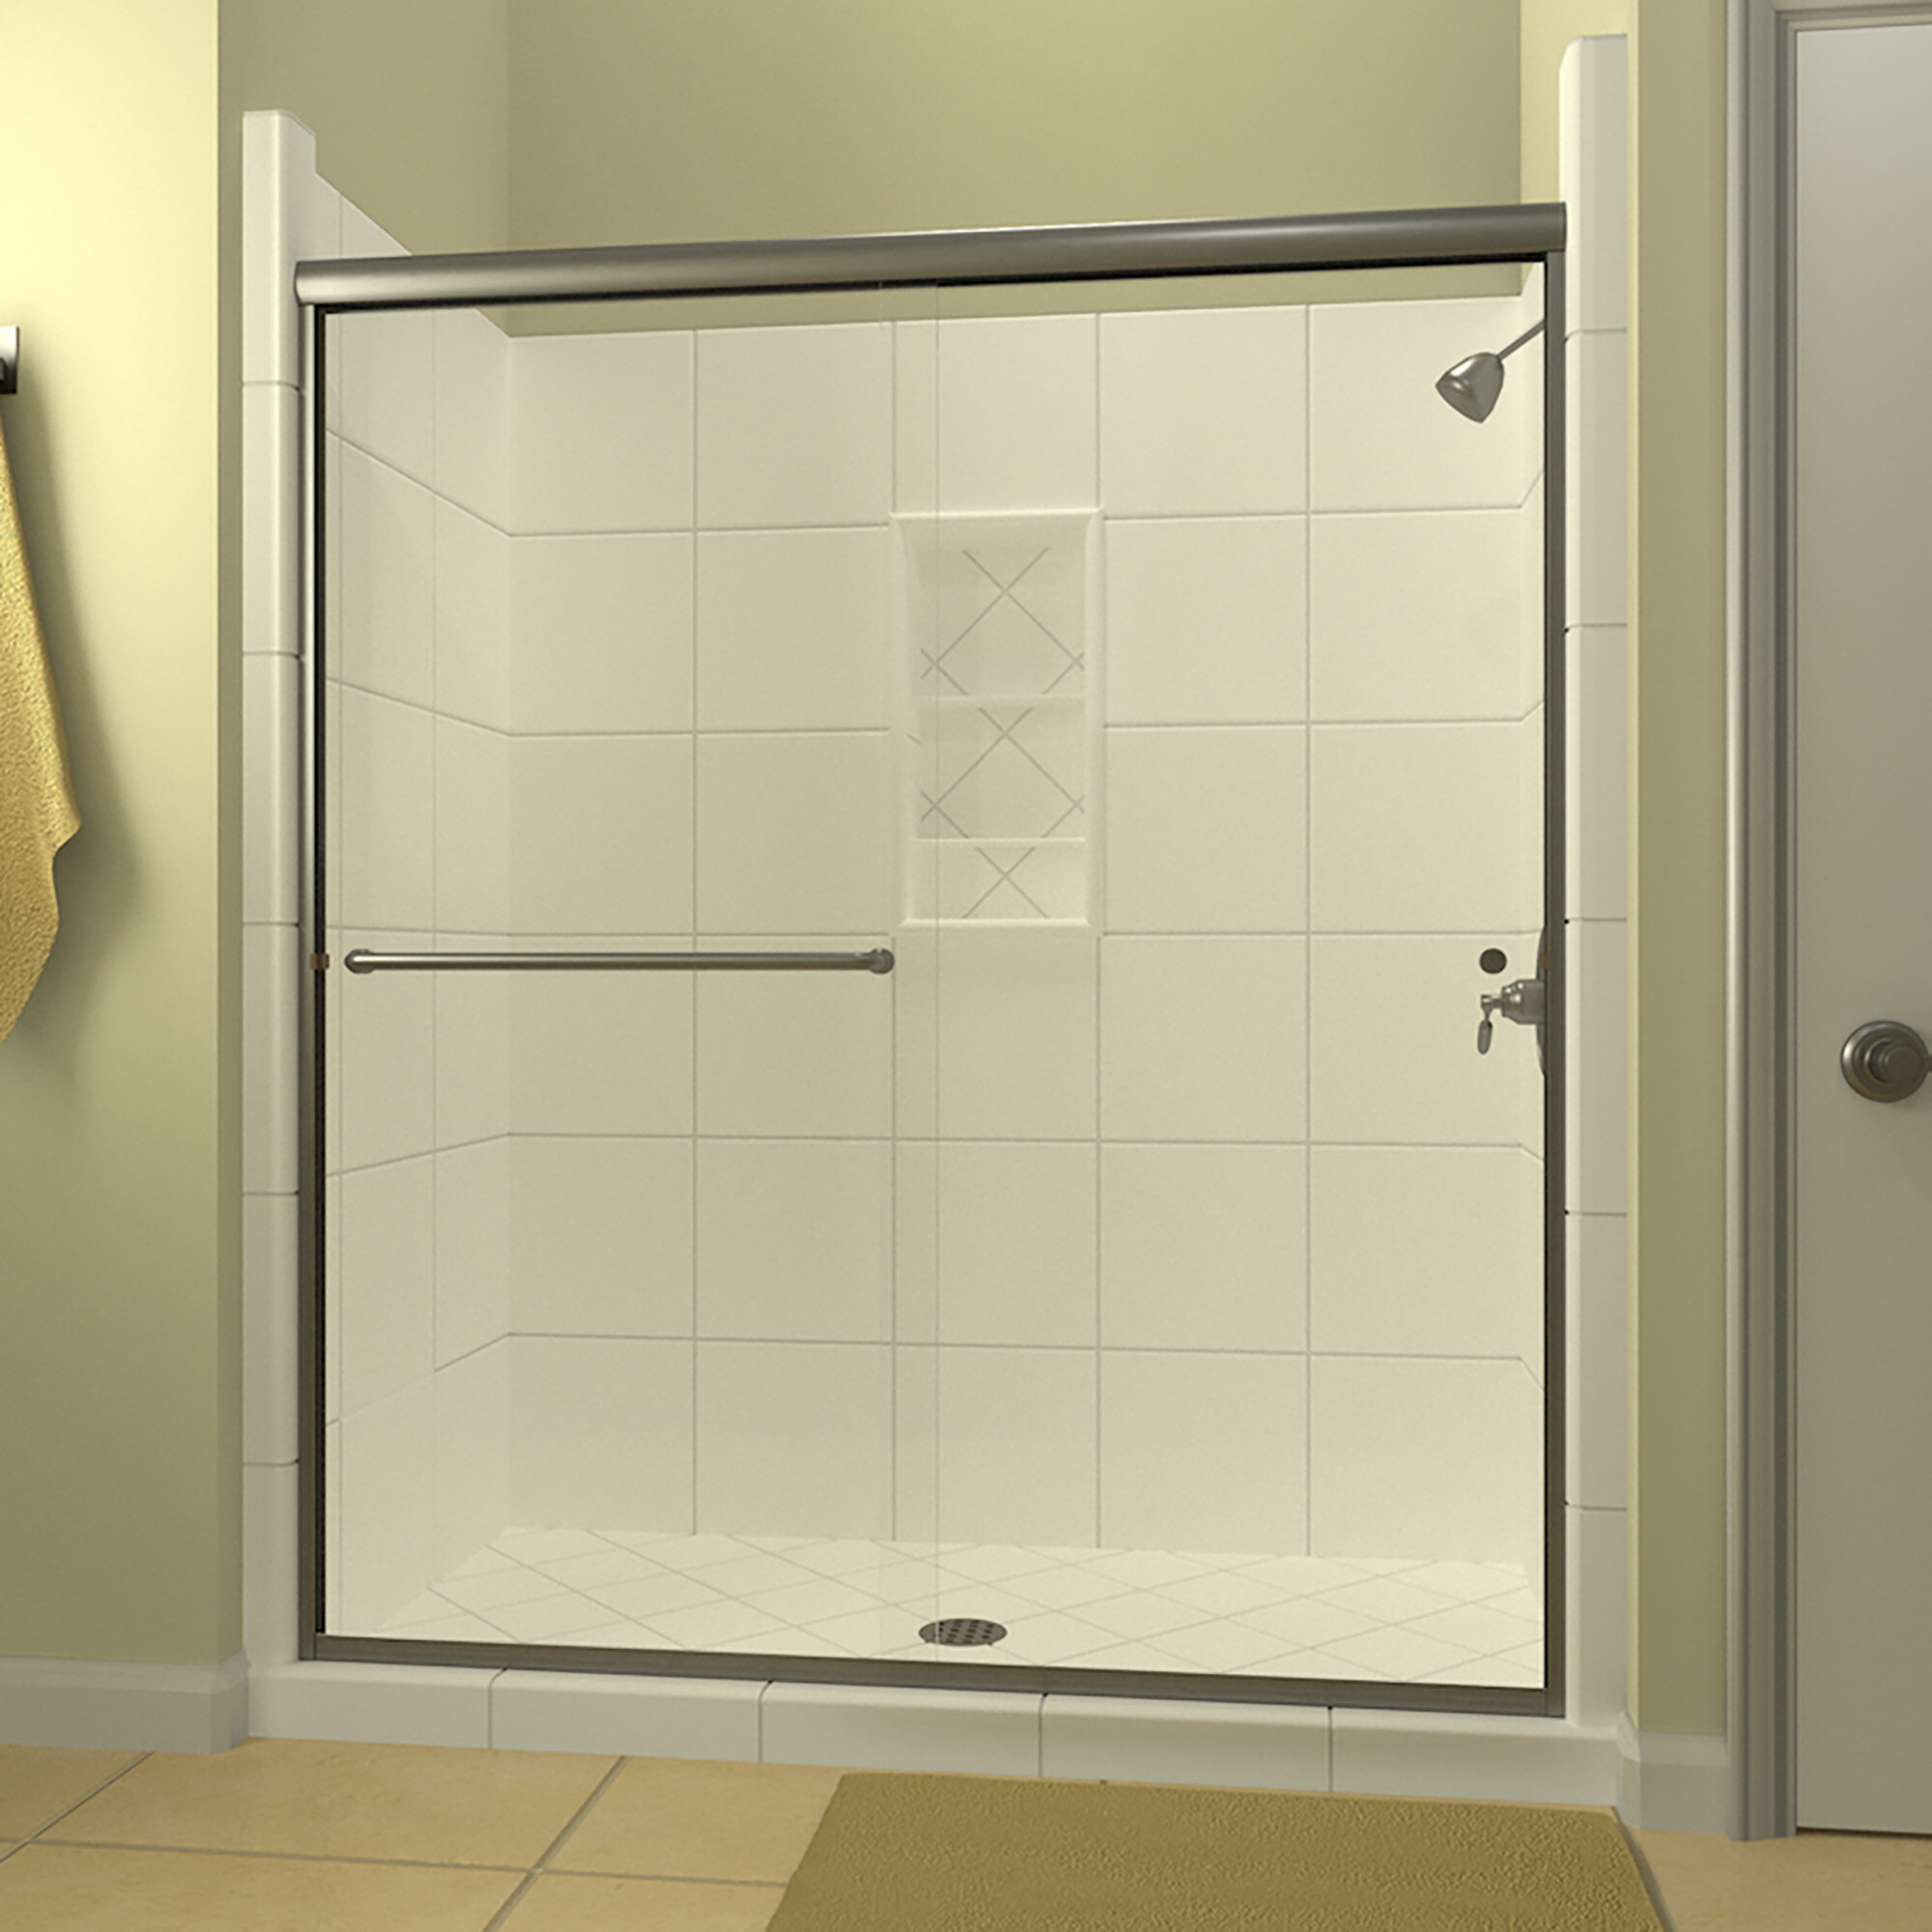 Details About Ese 66 X 70 38 Bypass Semi Frameless Shower Door Brushed Nickel Left Opening